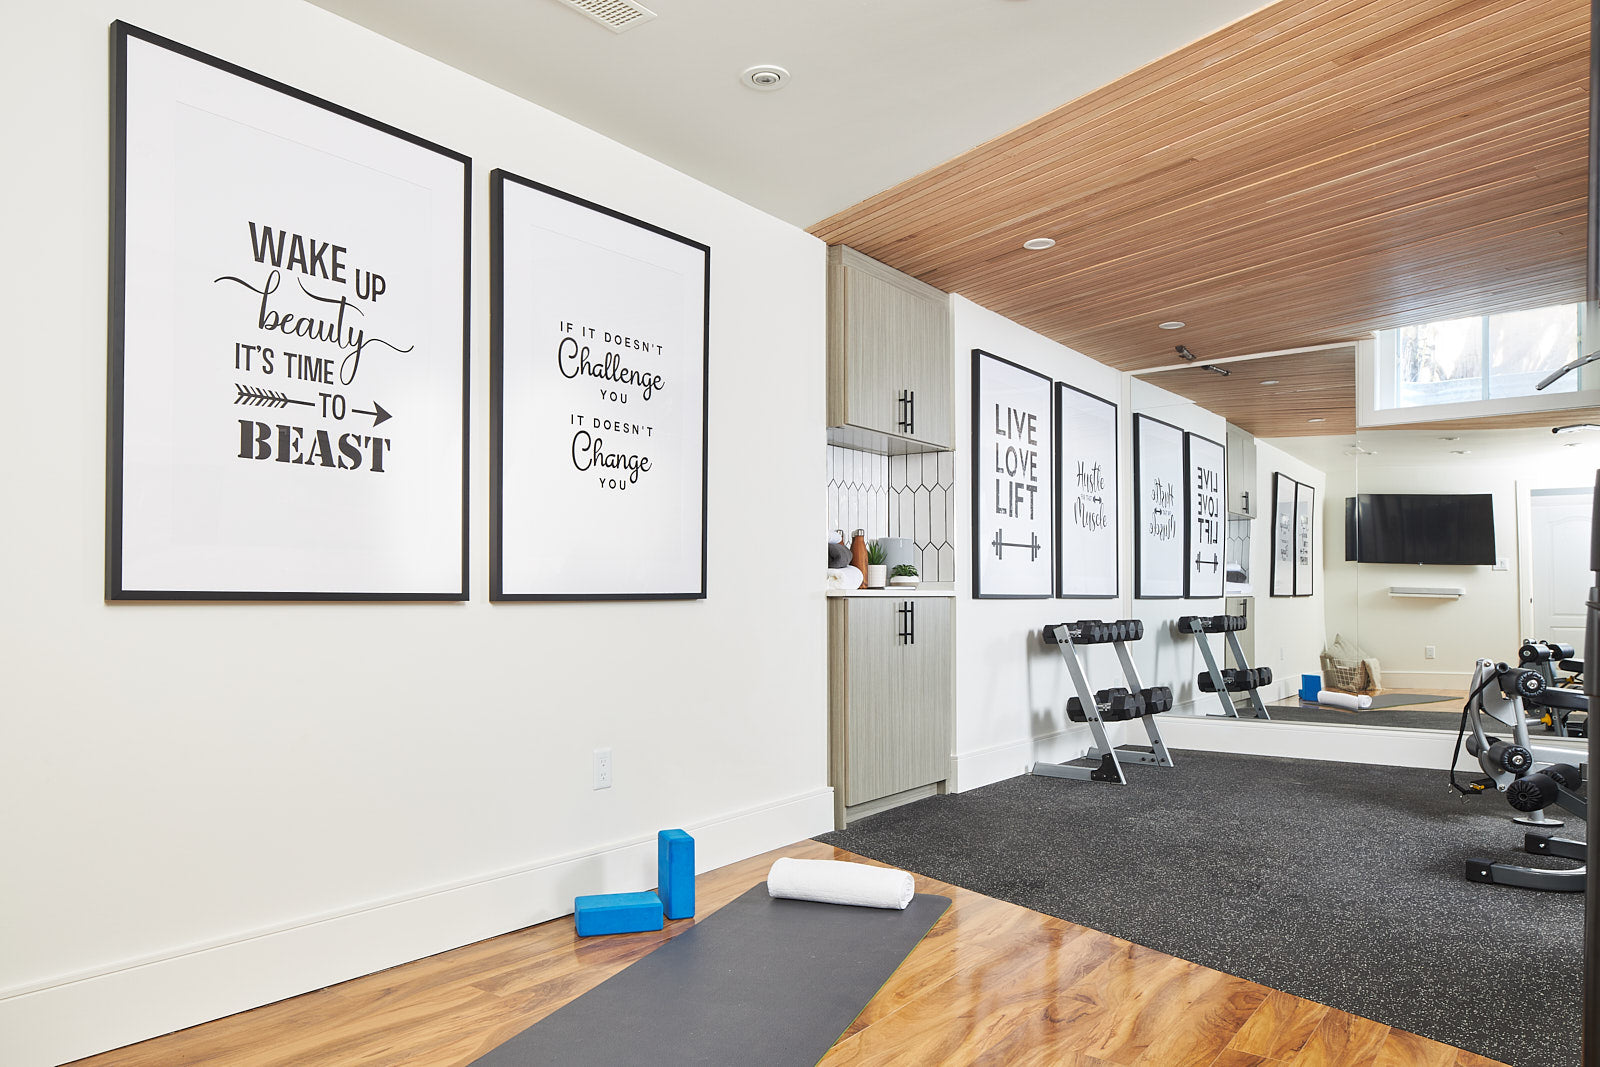 home gym, wood ceiling, jo alcorn